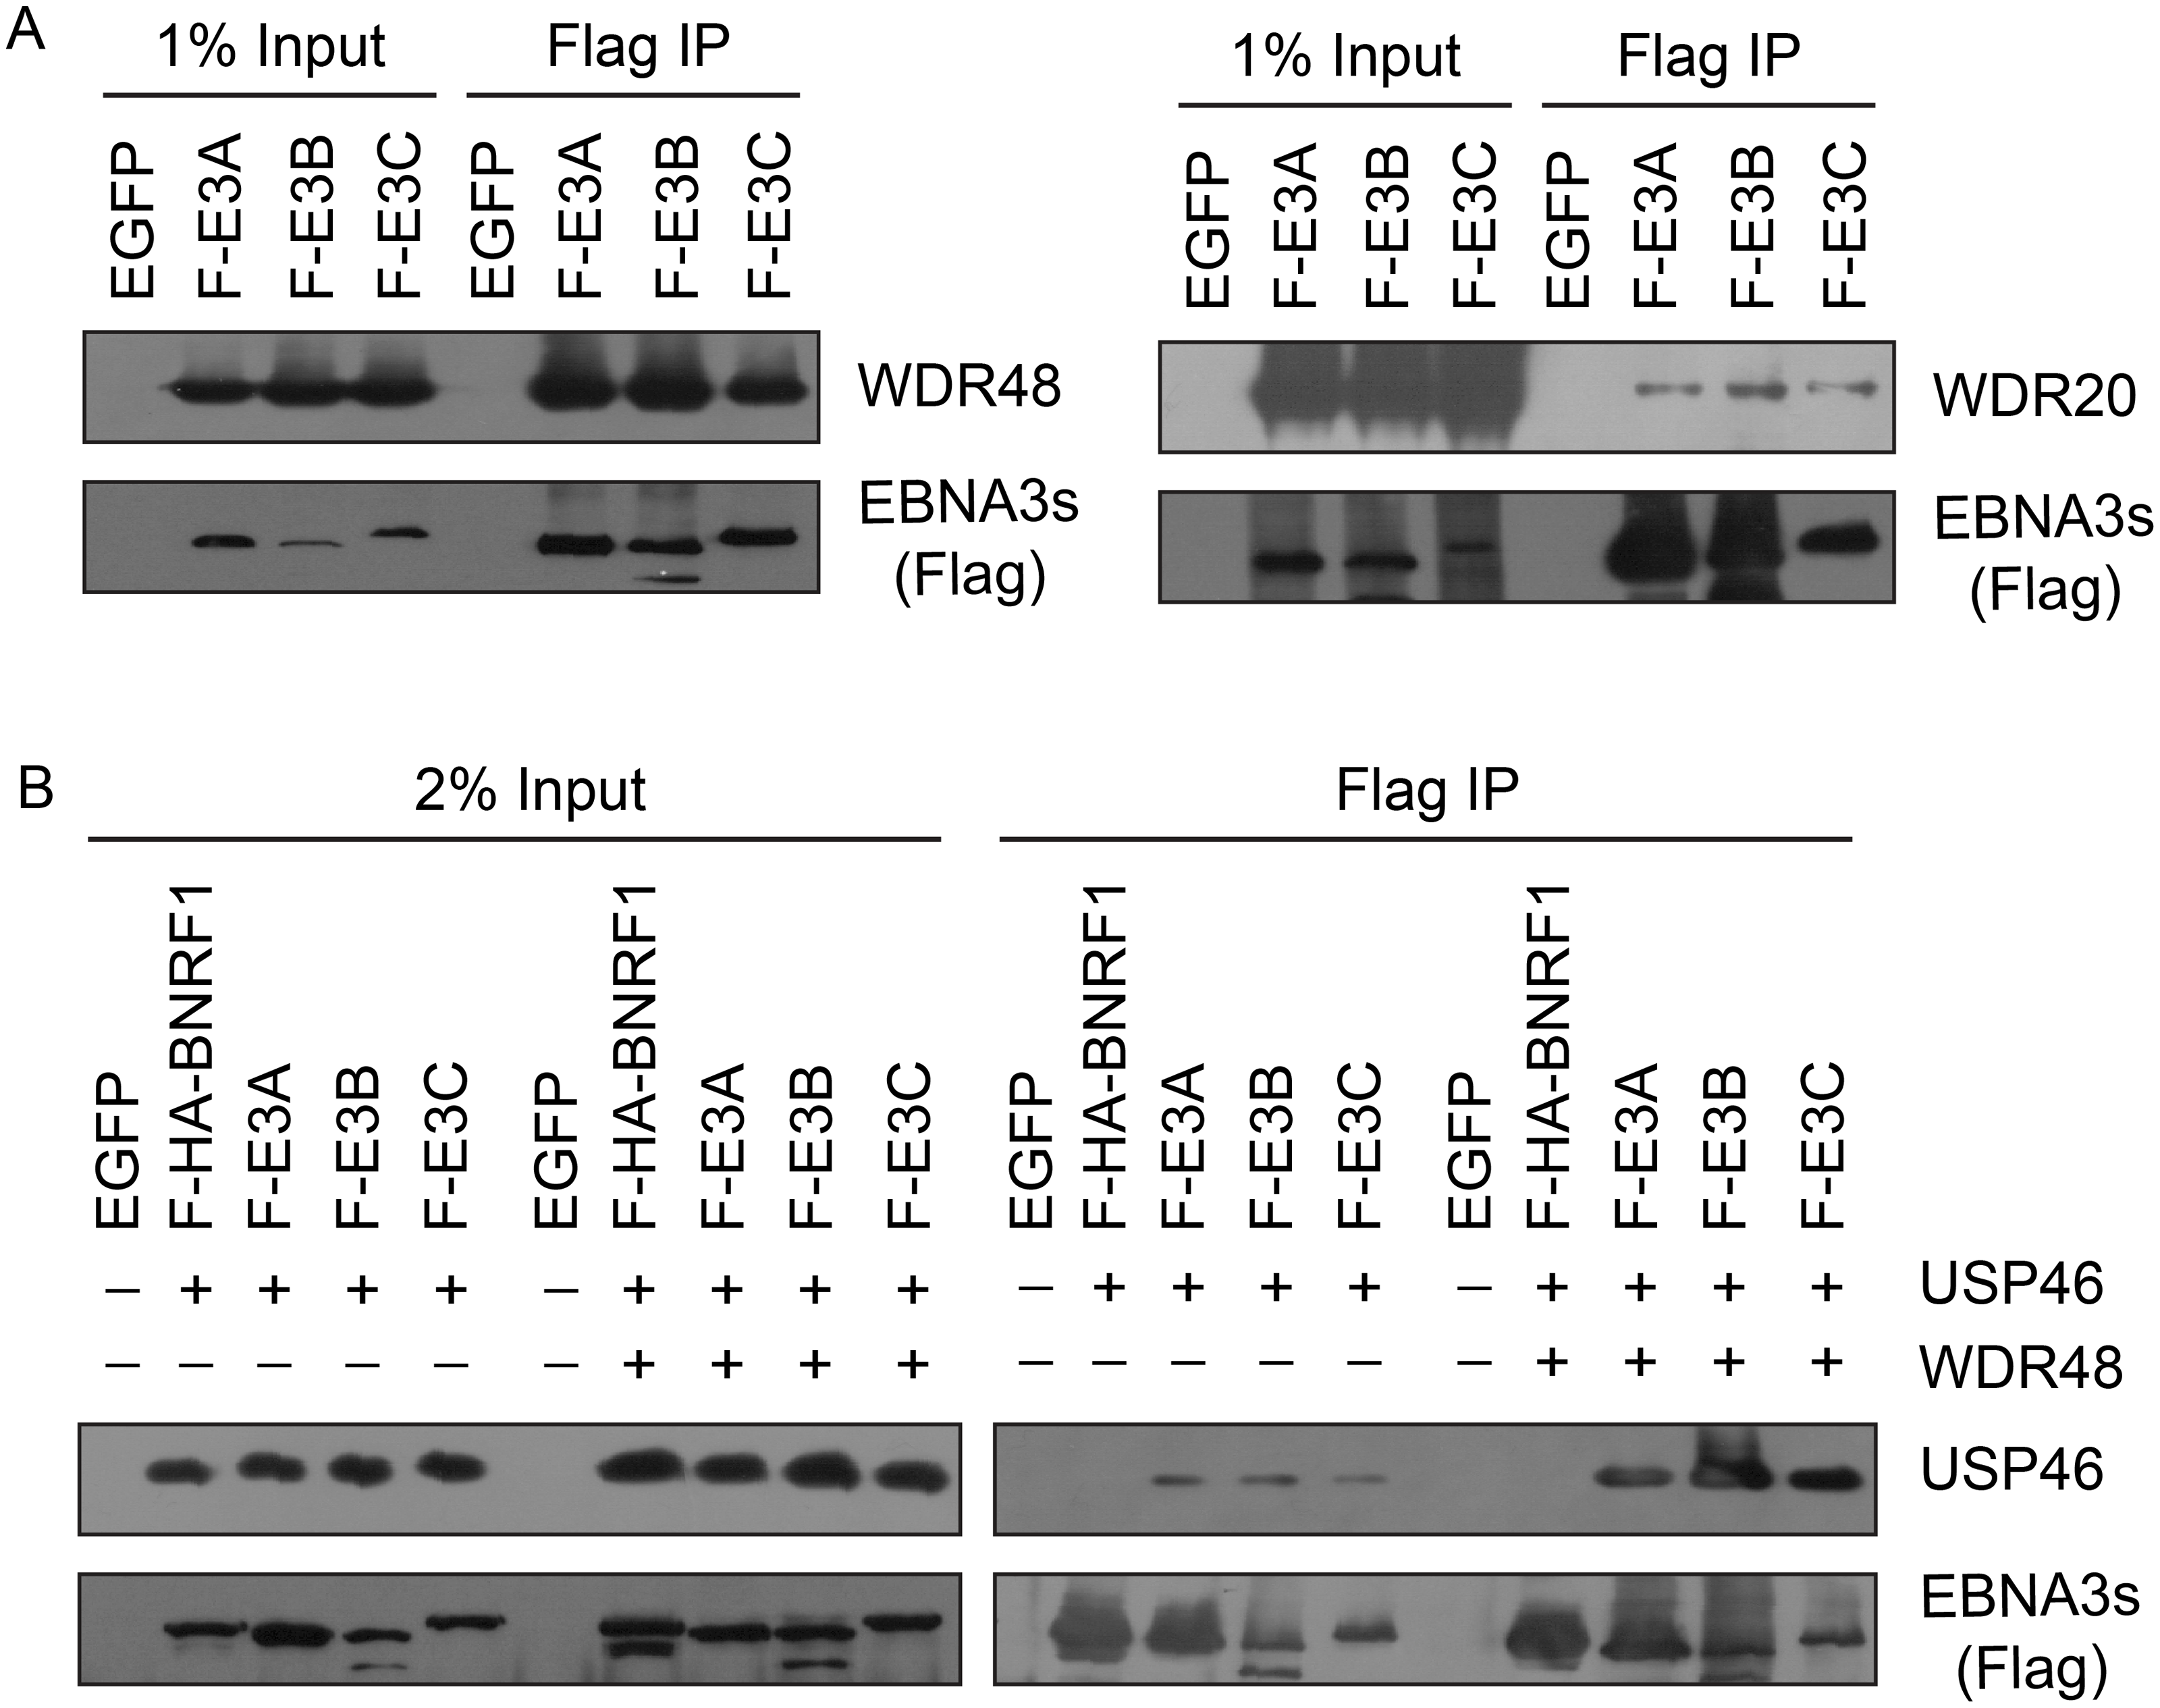 EBNA3 proteins preferentially bind the WDR48 subunit of the USP46 DUB complex.